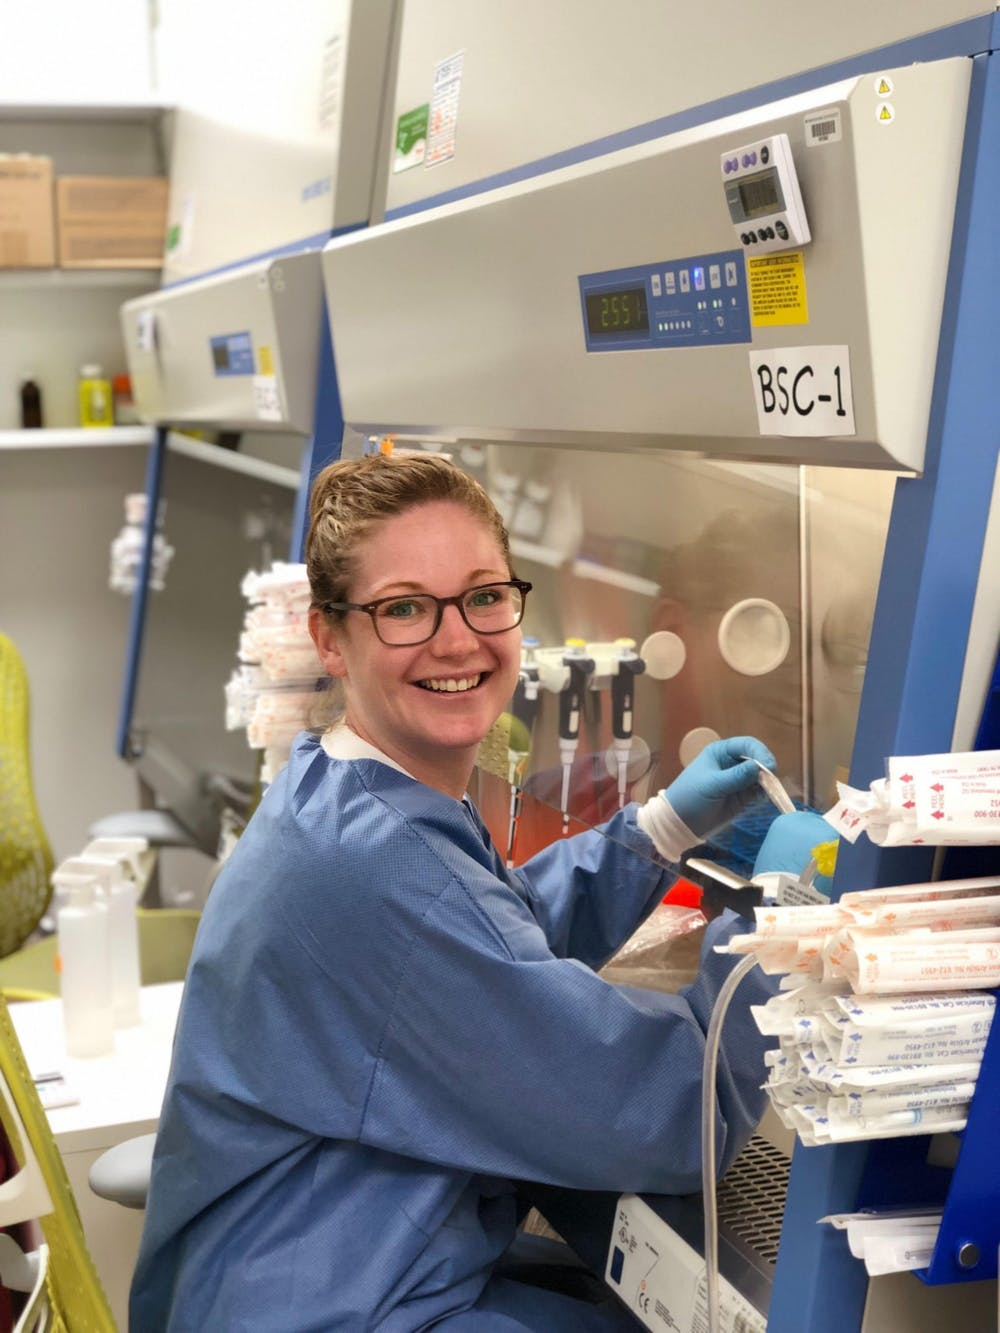 <h6>Brittany Adamson, Assistant Professor in the Department of Molecular Biology and the Lewis-Sigler Institute for Integrative Genomics.</h6> <h6>Photo Credit: Britt Adamson</h6>